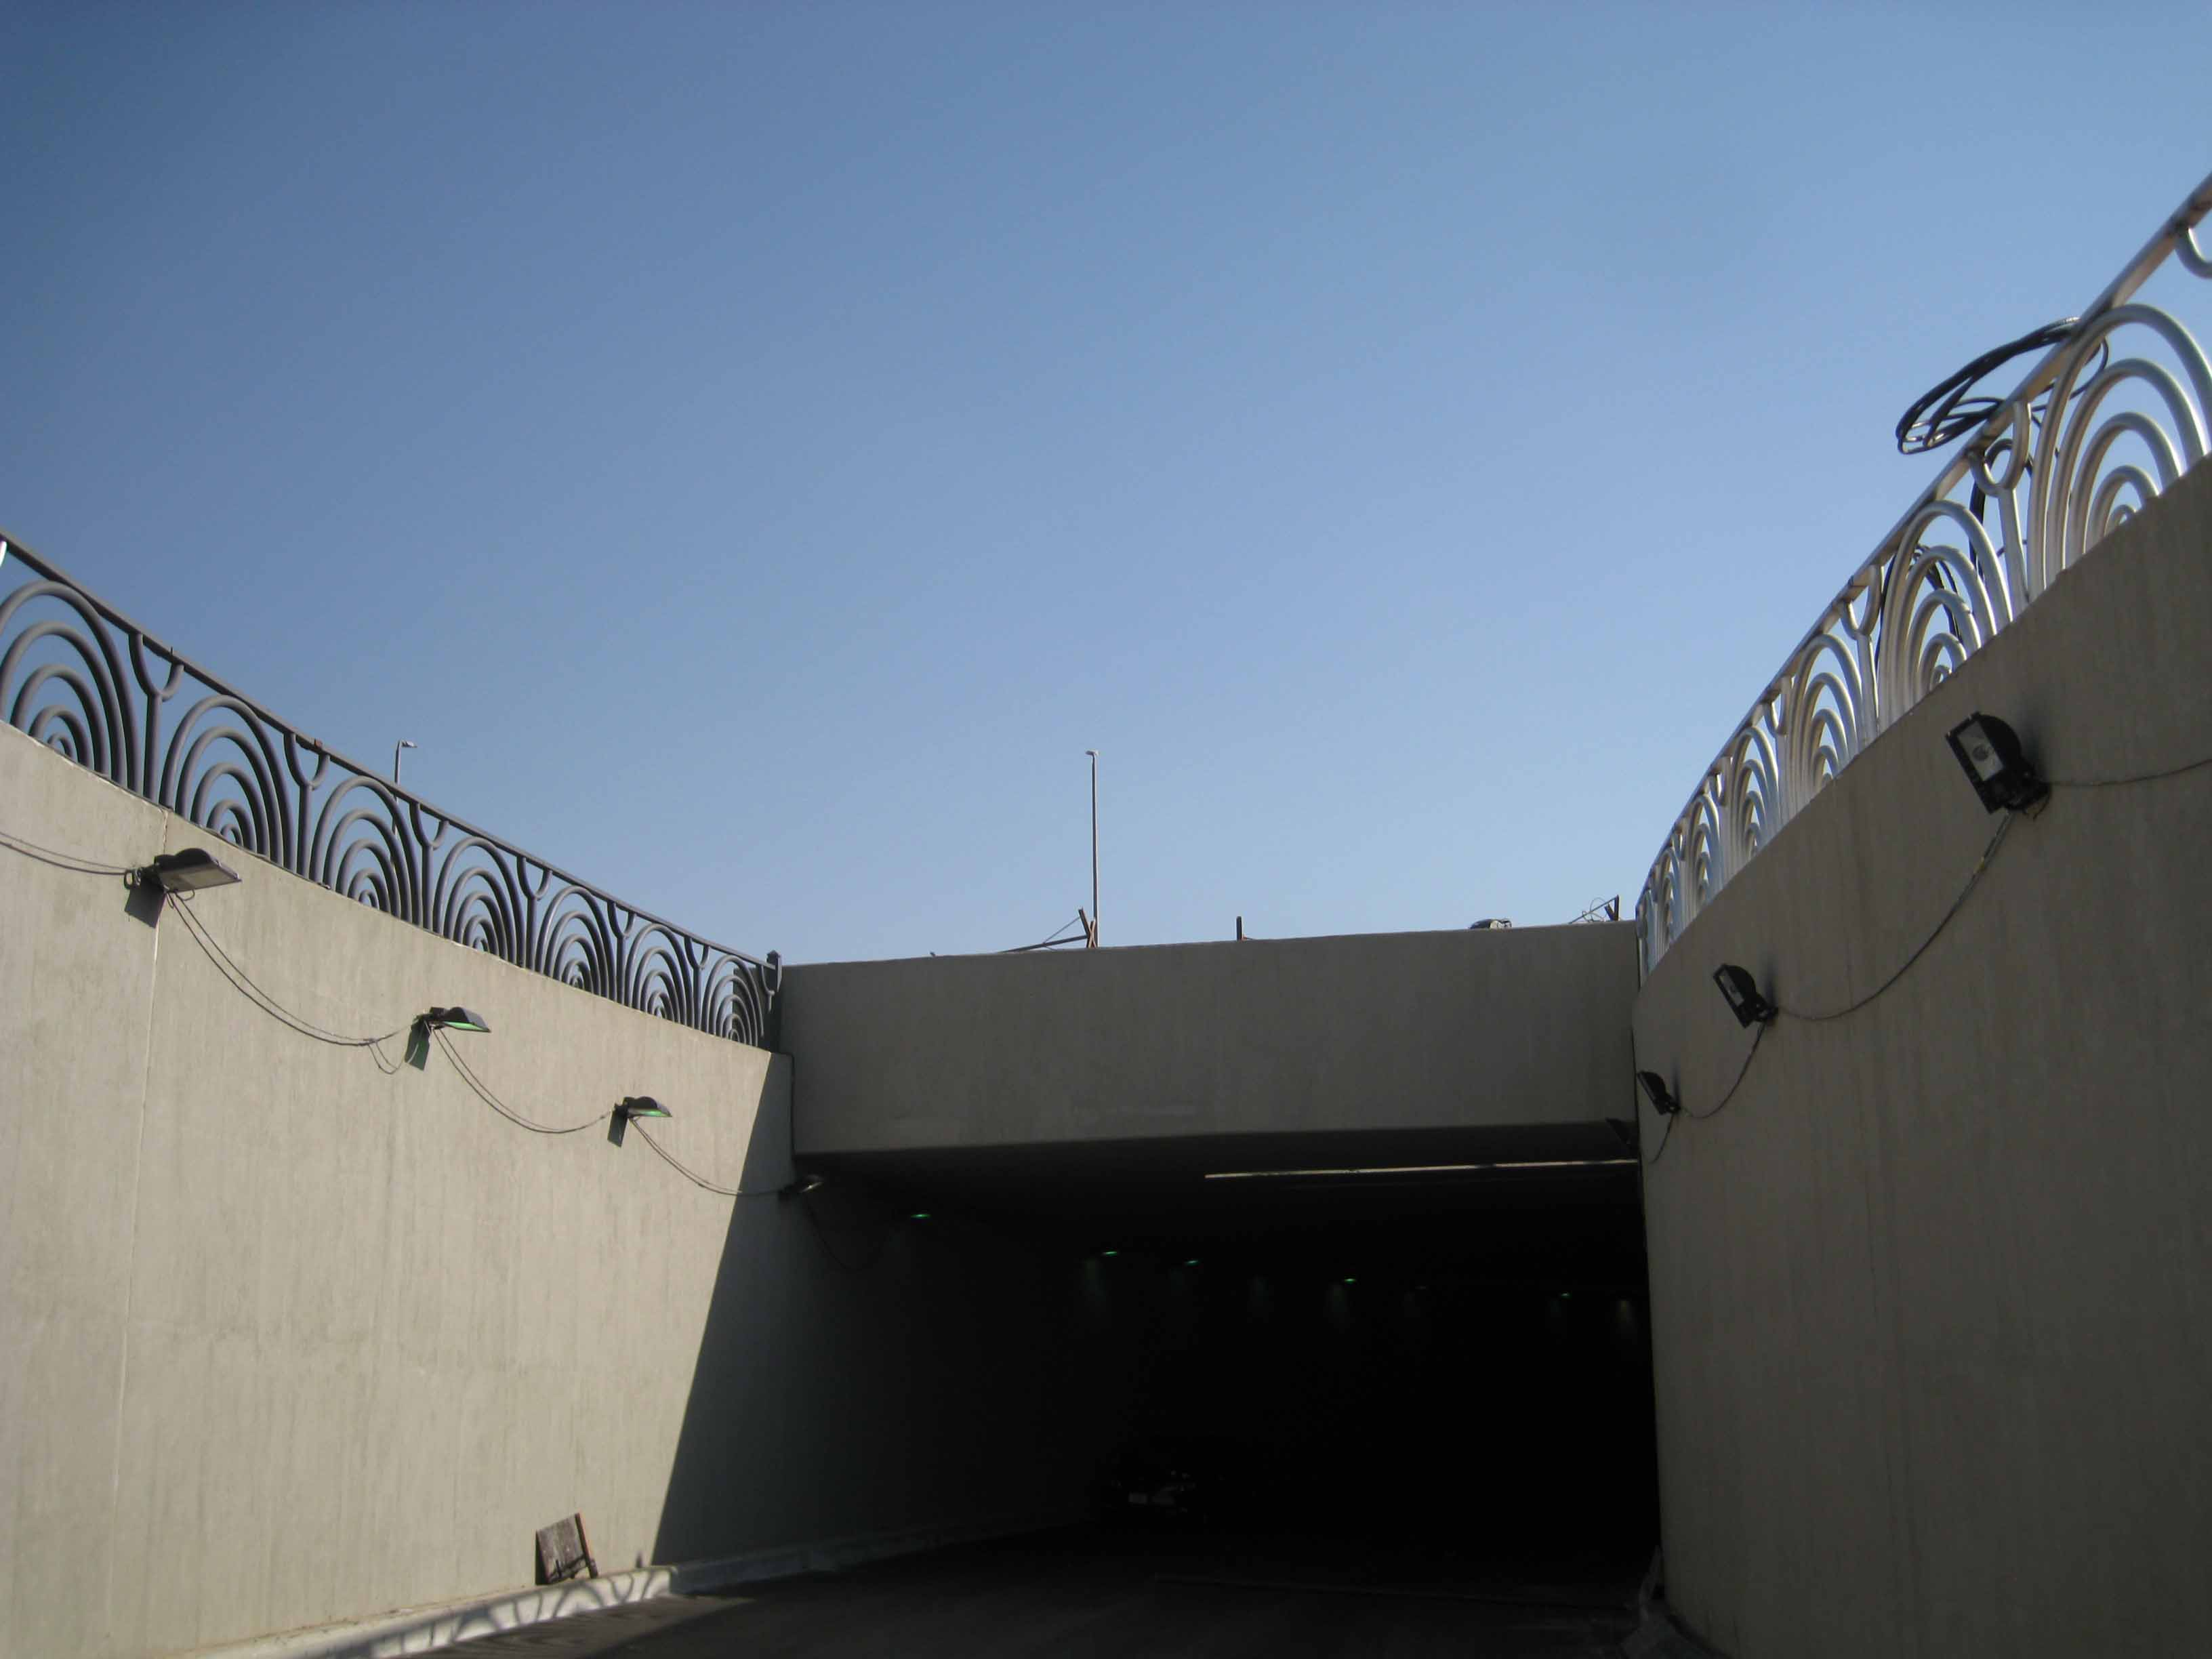 Handrail of Downtown tunnel project (29)